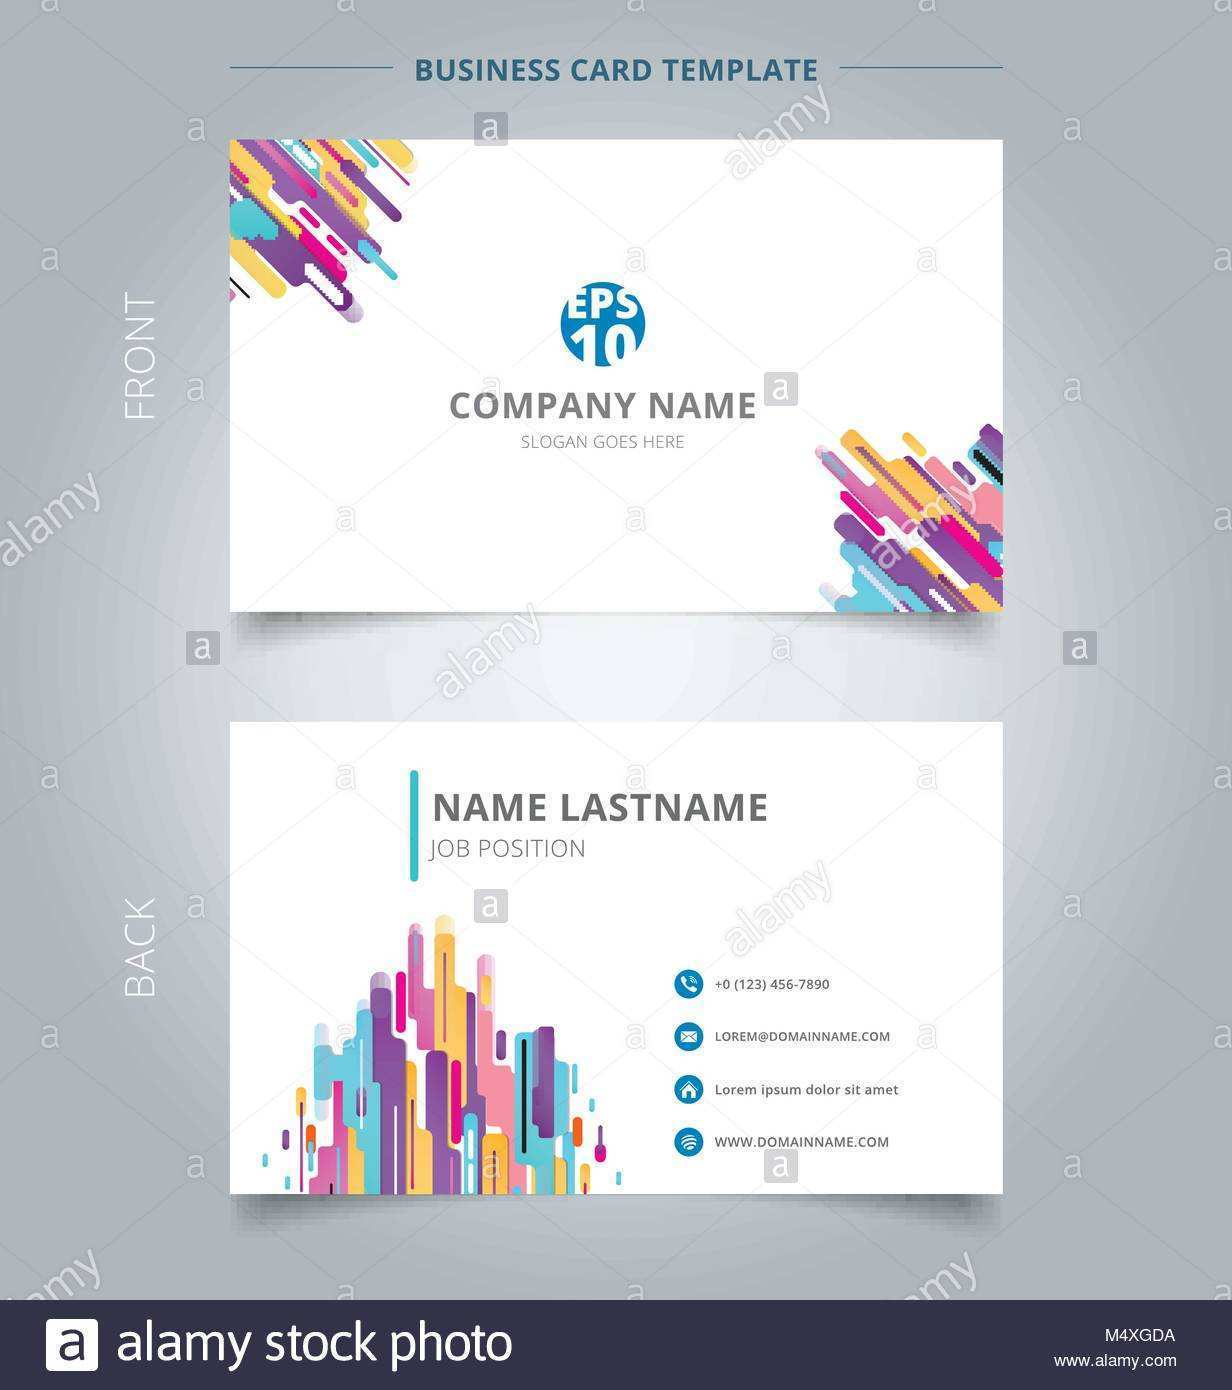 77 Customize Business Card Shapes Templates in Photoshop by Business Card Shapes Templates